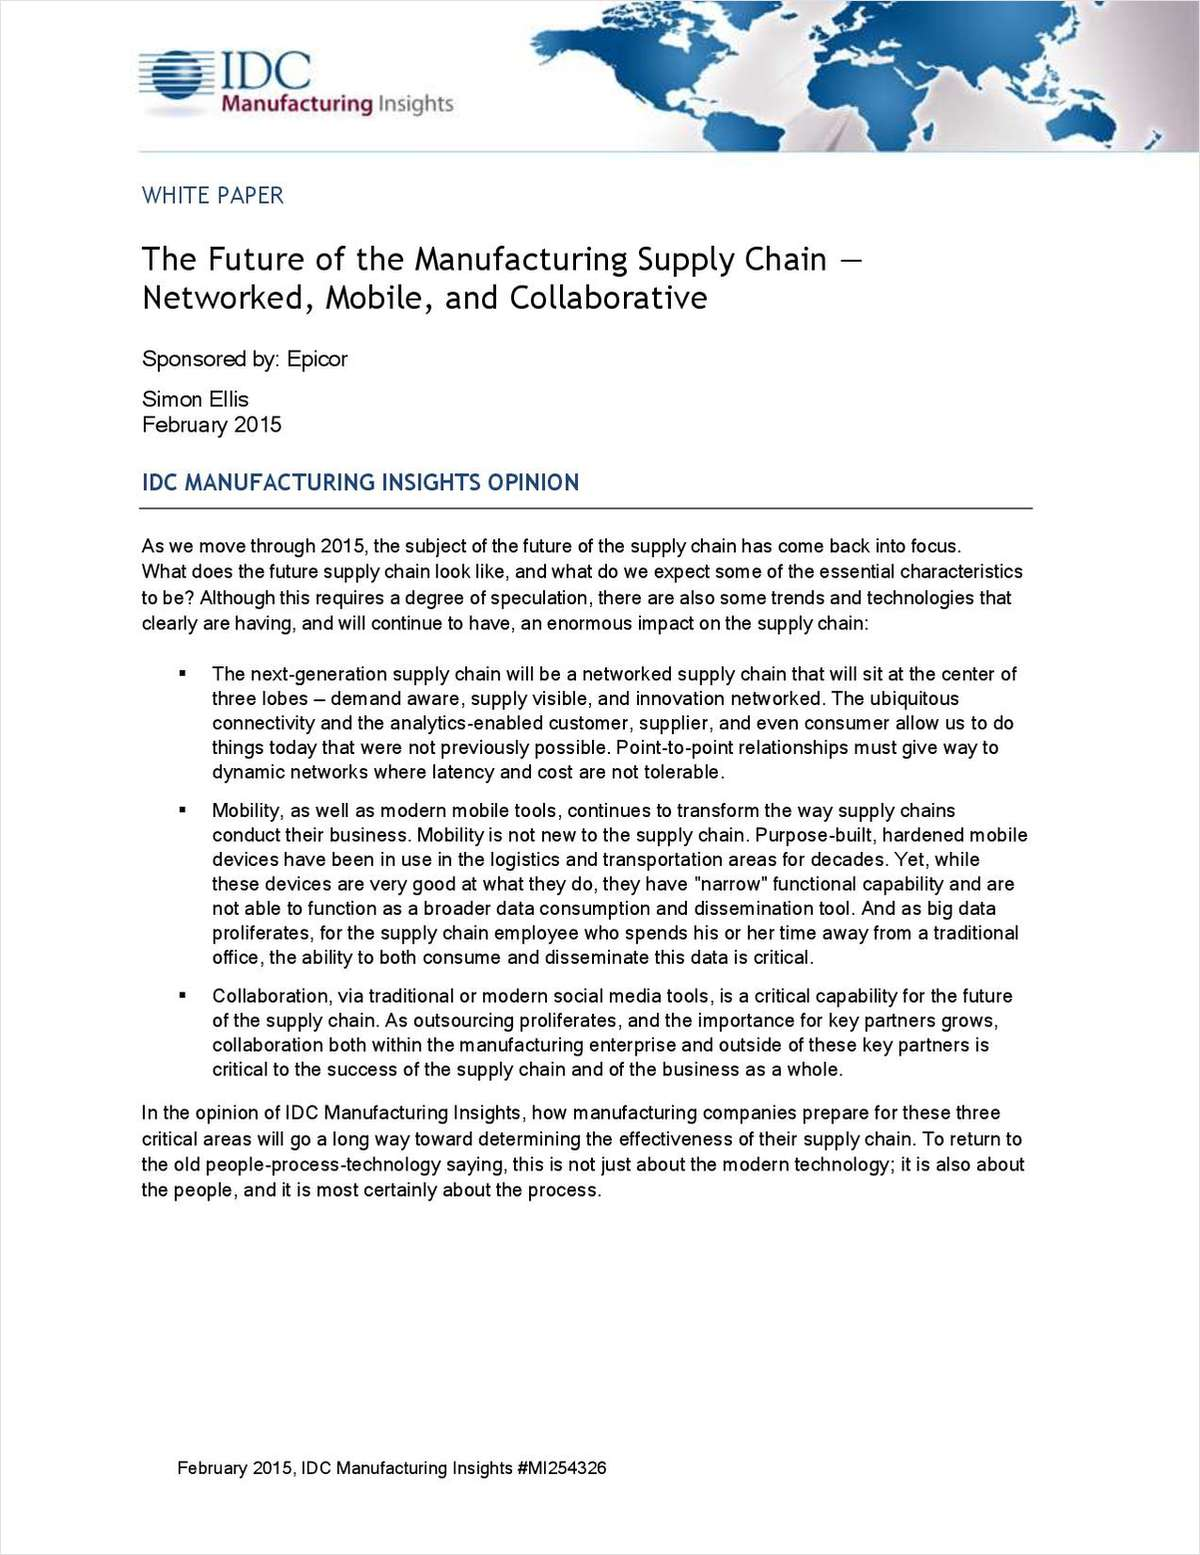 The Future of the Manufacturing Supply Chain